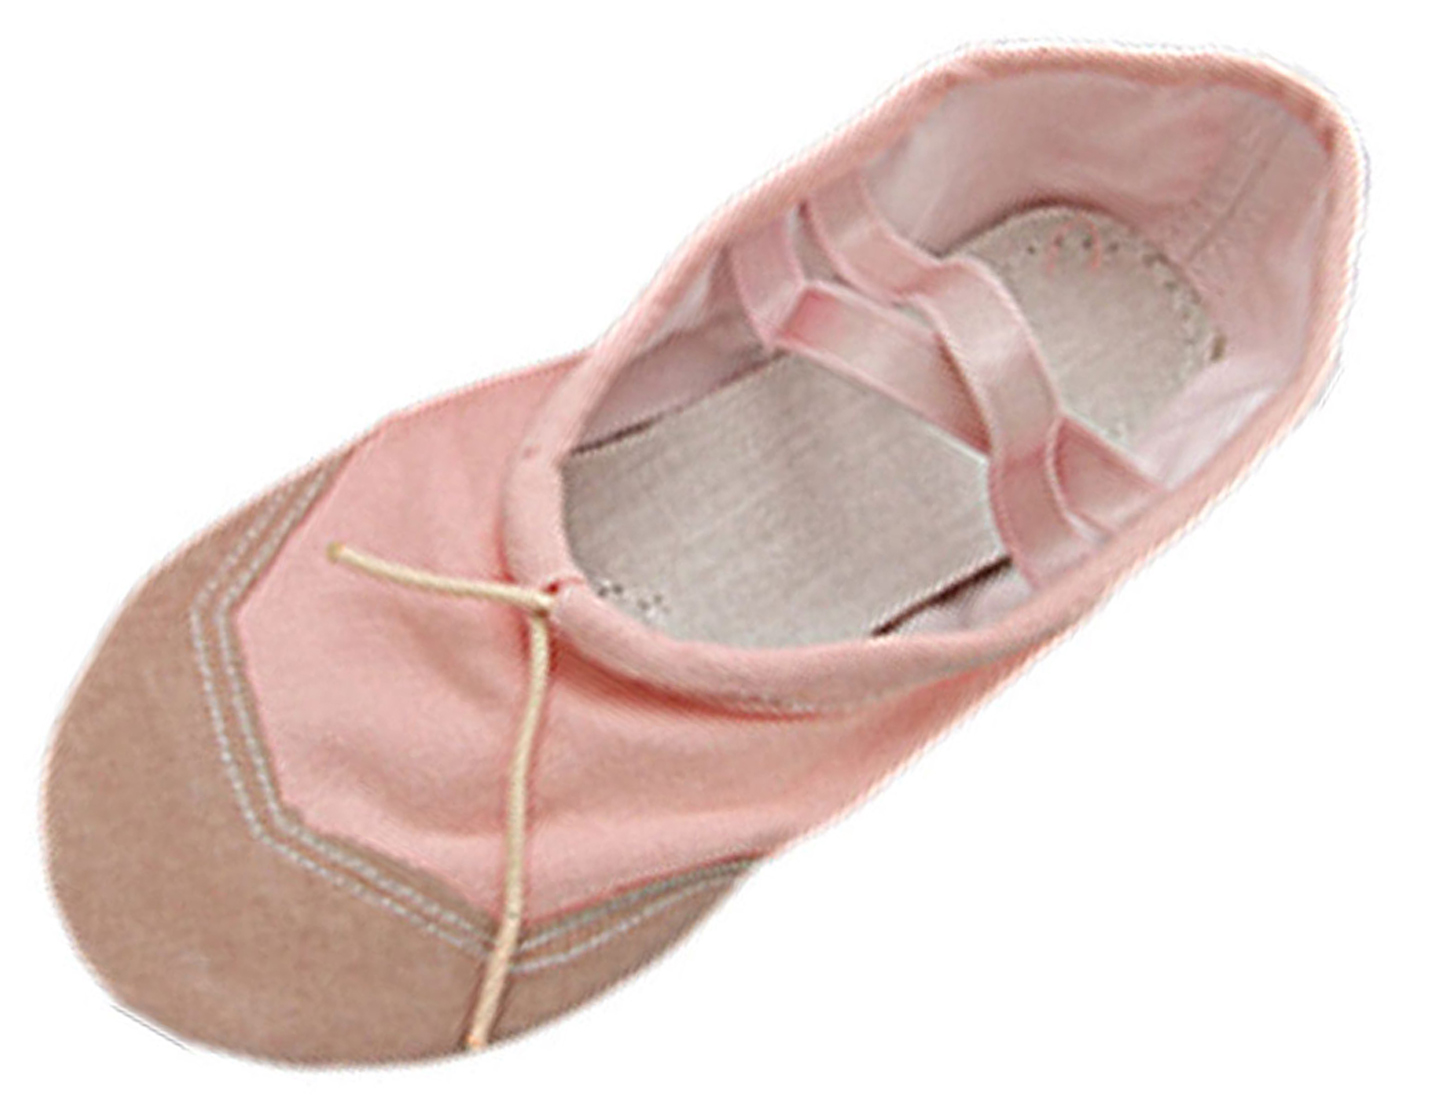 Soft Elegant Pink Dancing Dance Shoes Size 11.5